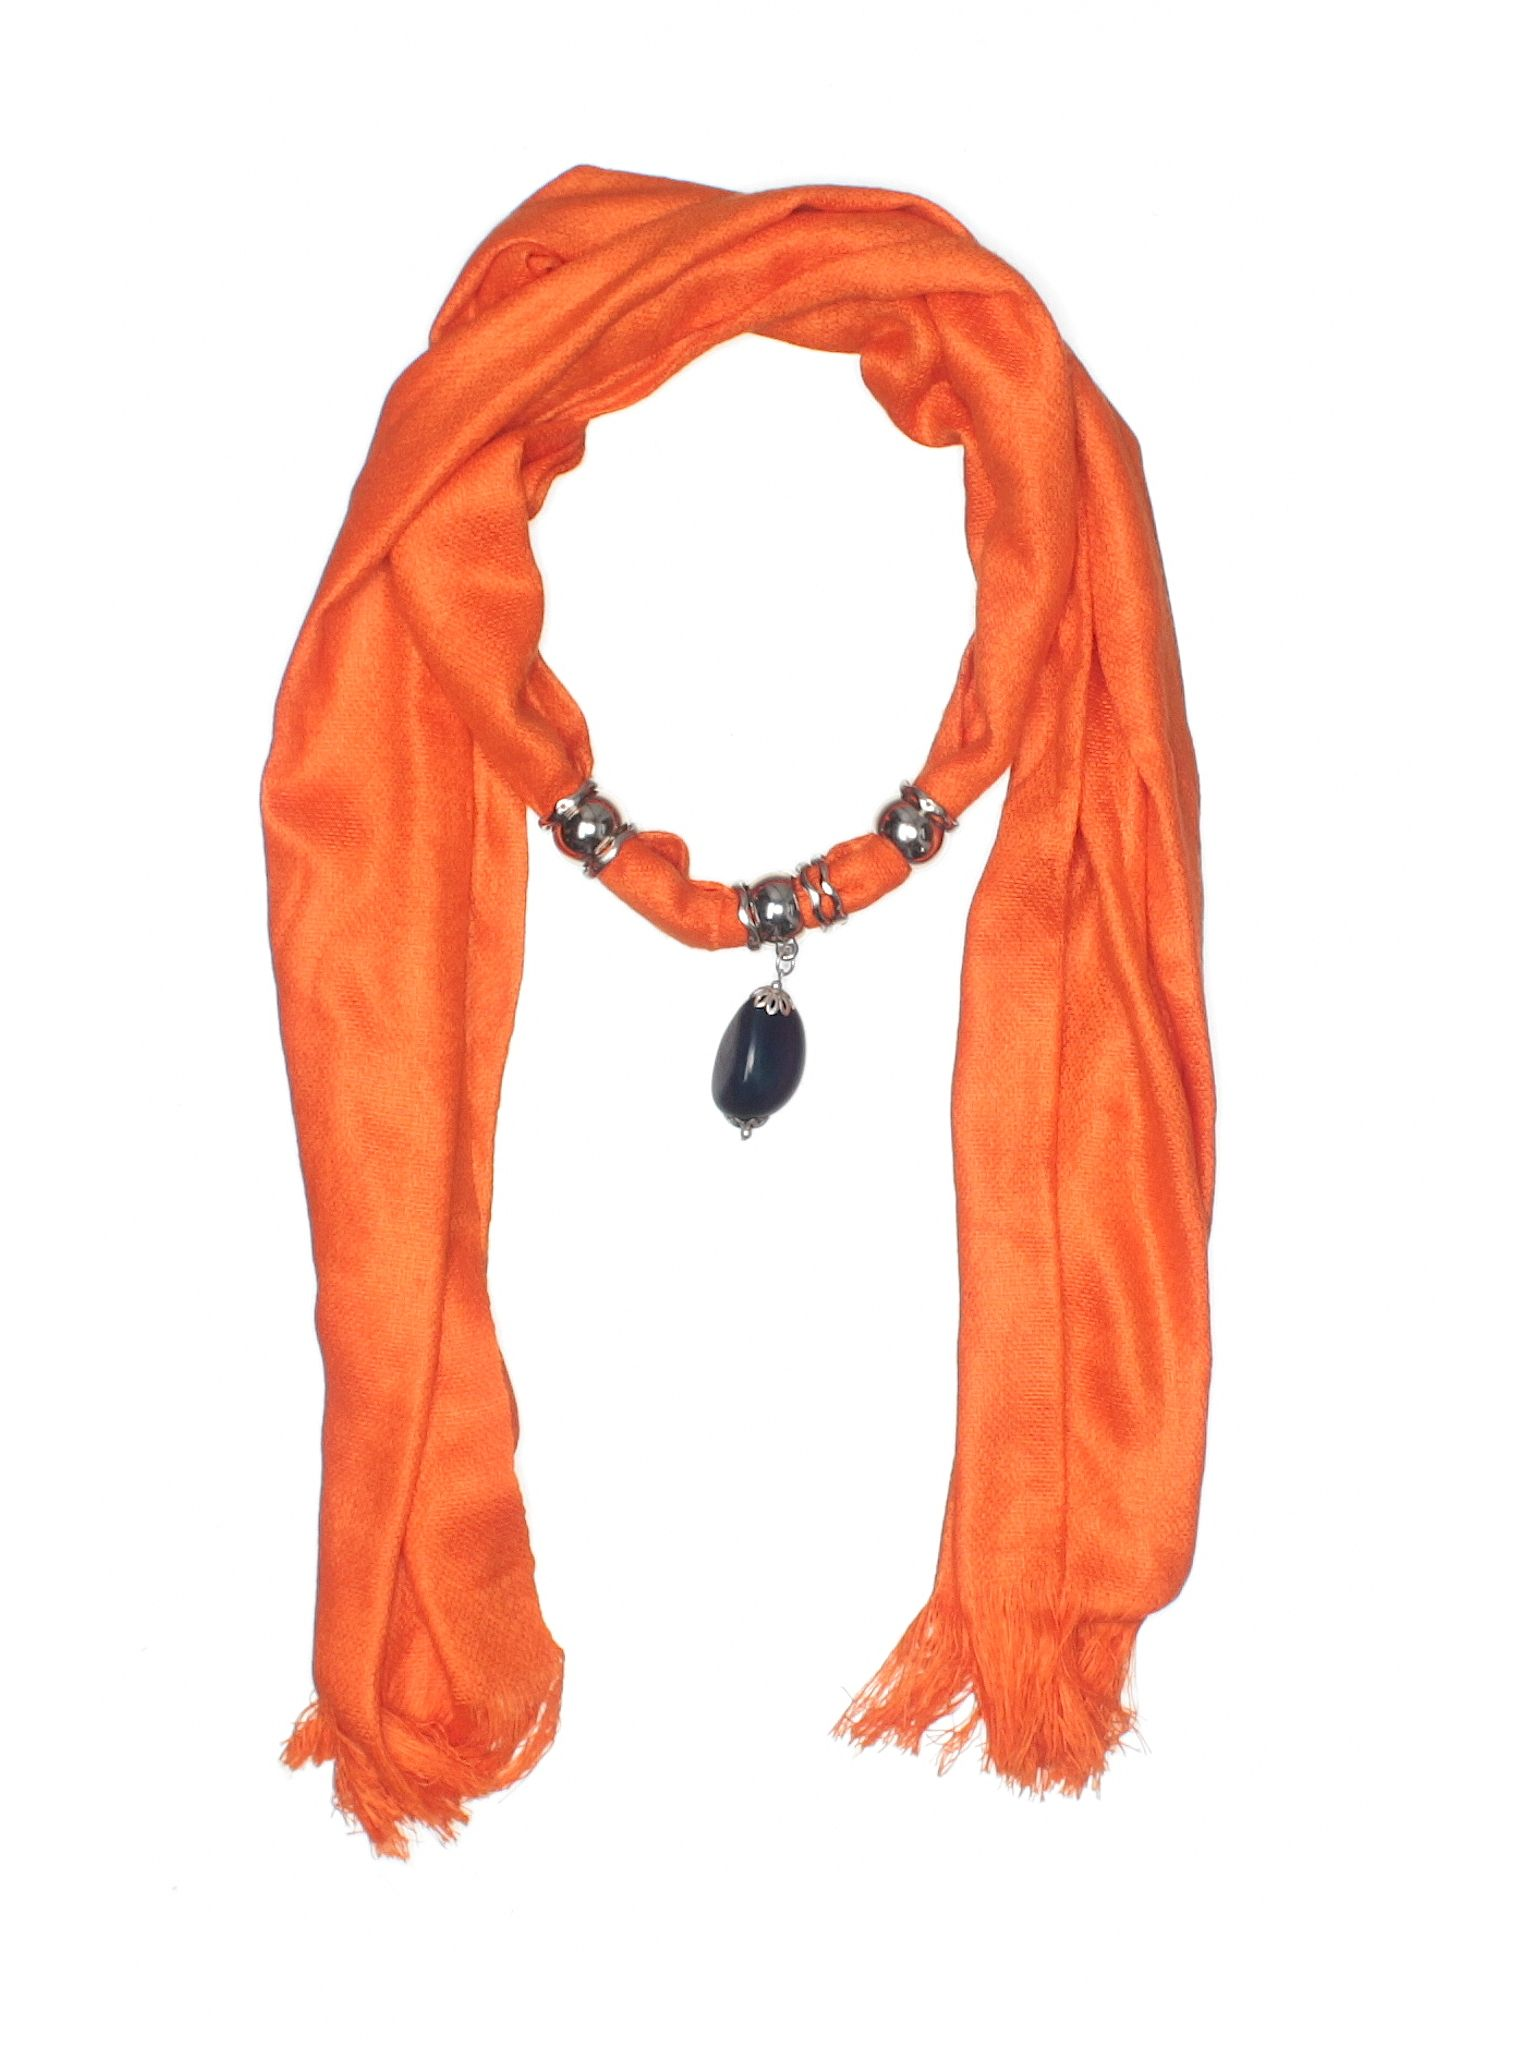 Unbranded Accessories Scarf Size 000 Orange Womens Accessories  $1099